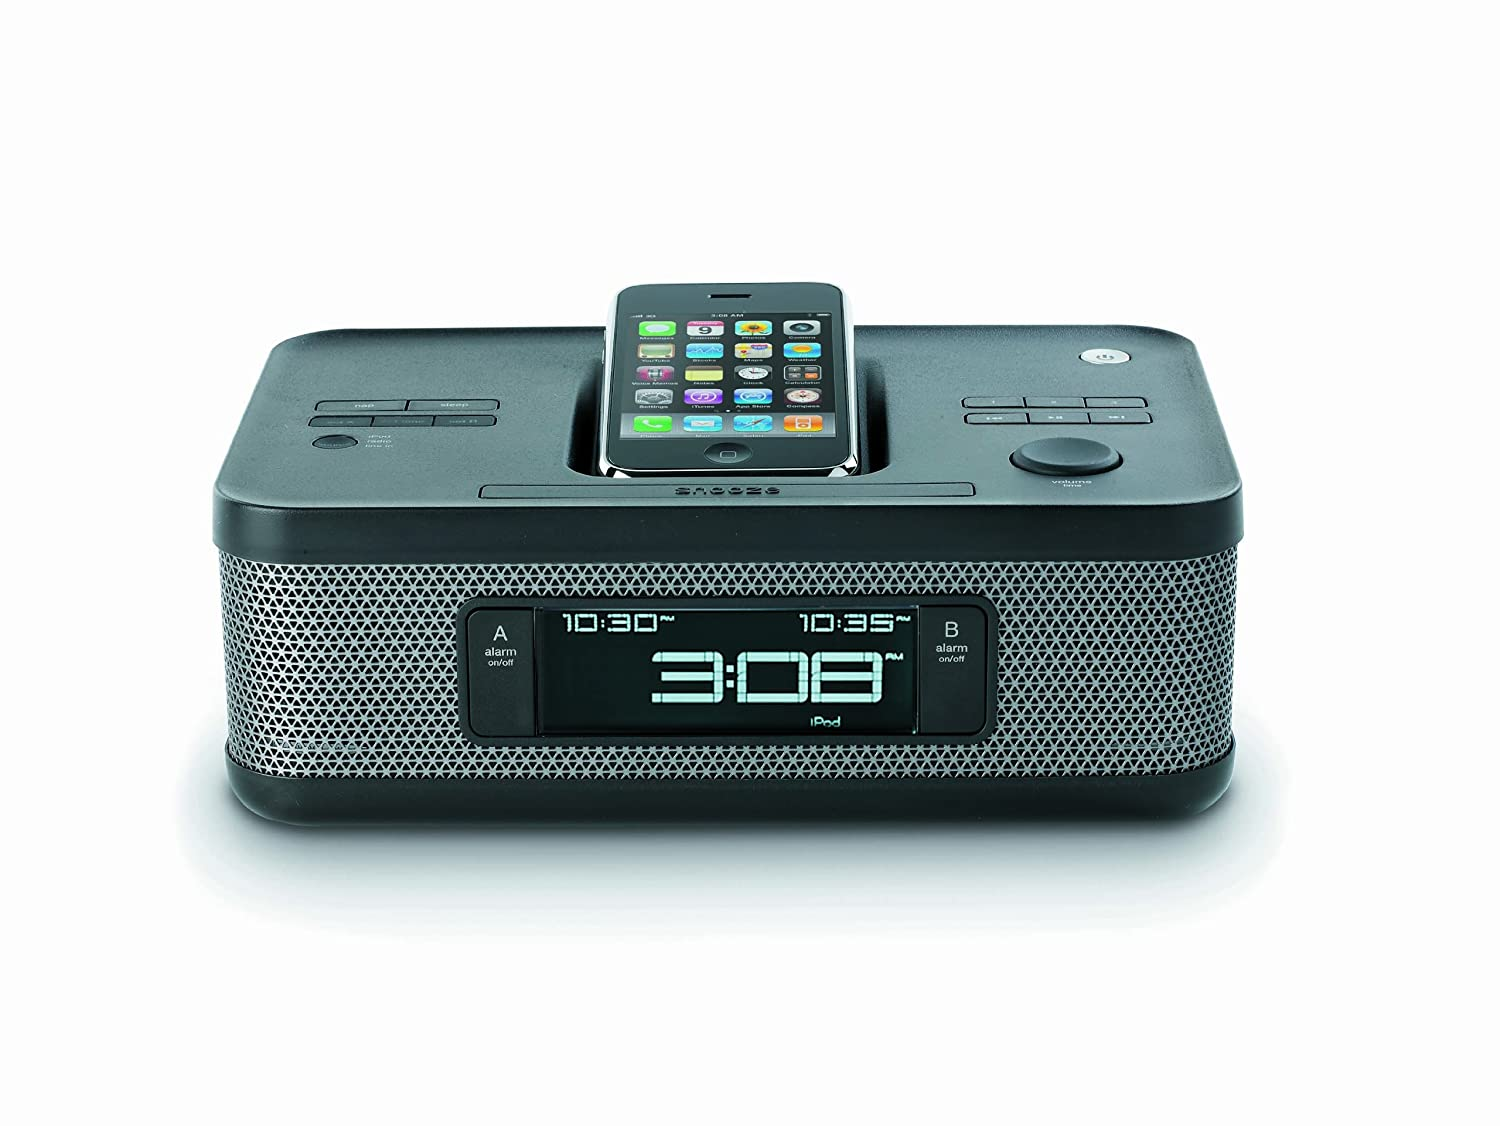 Mnl-4838] memorex ipod docking station manual | 2019 ebook library.